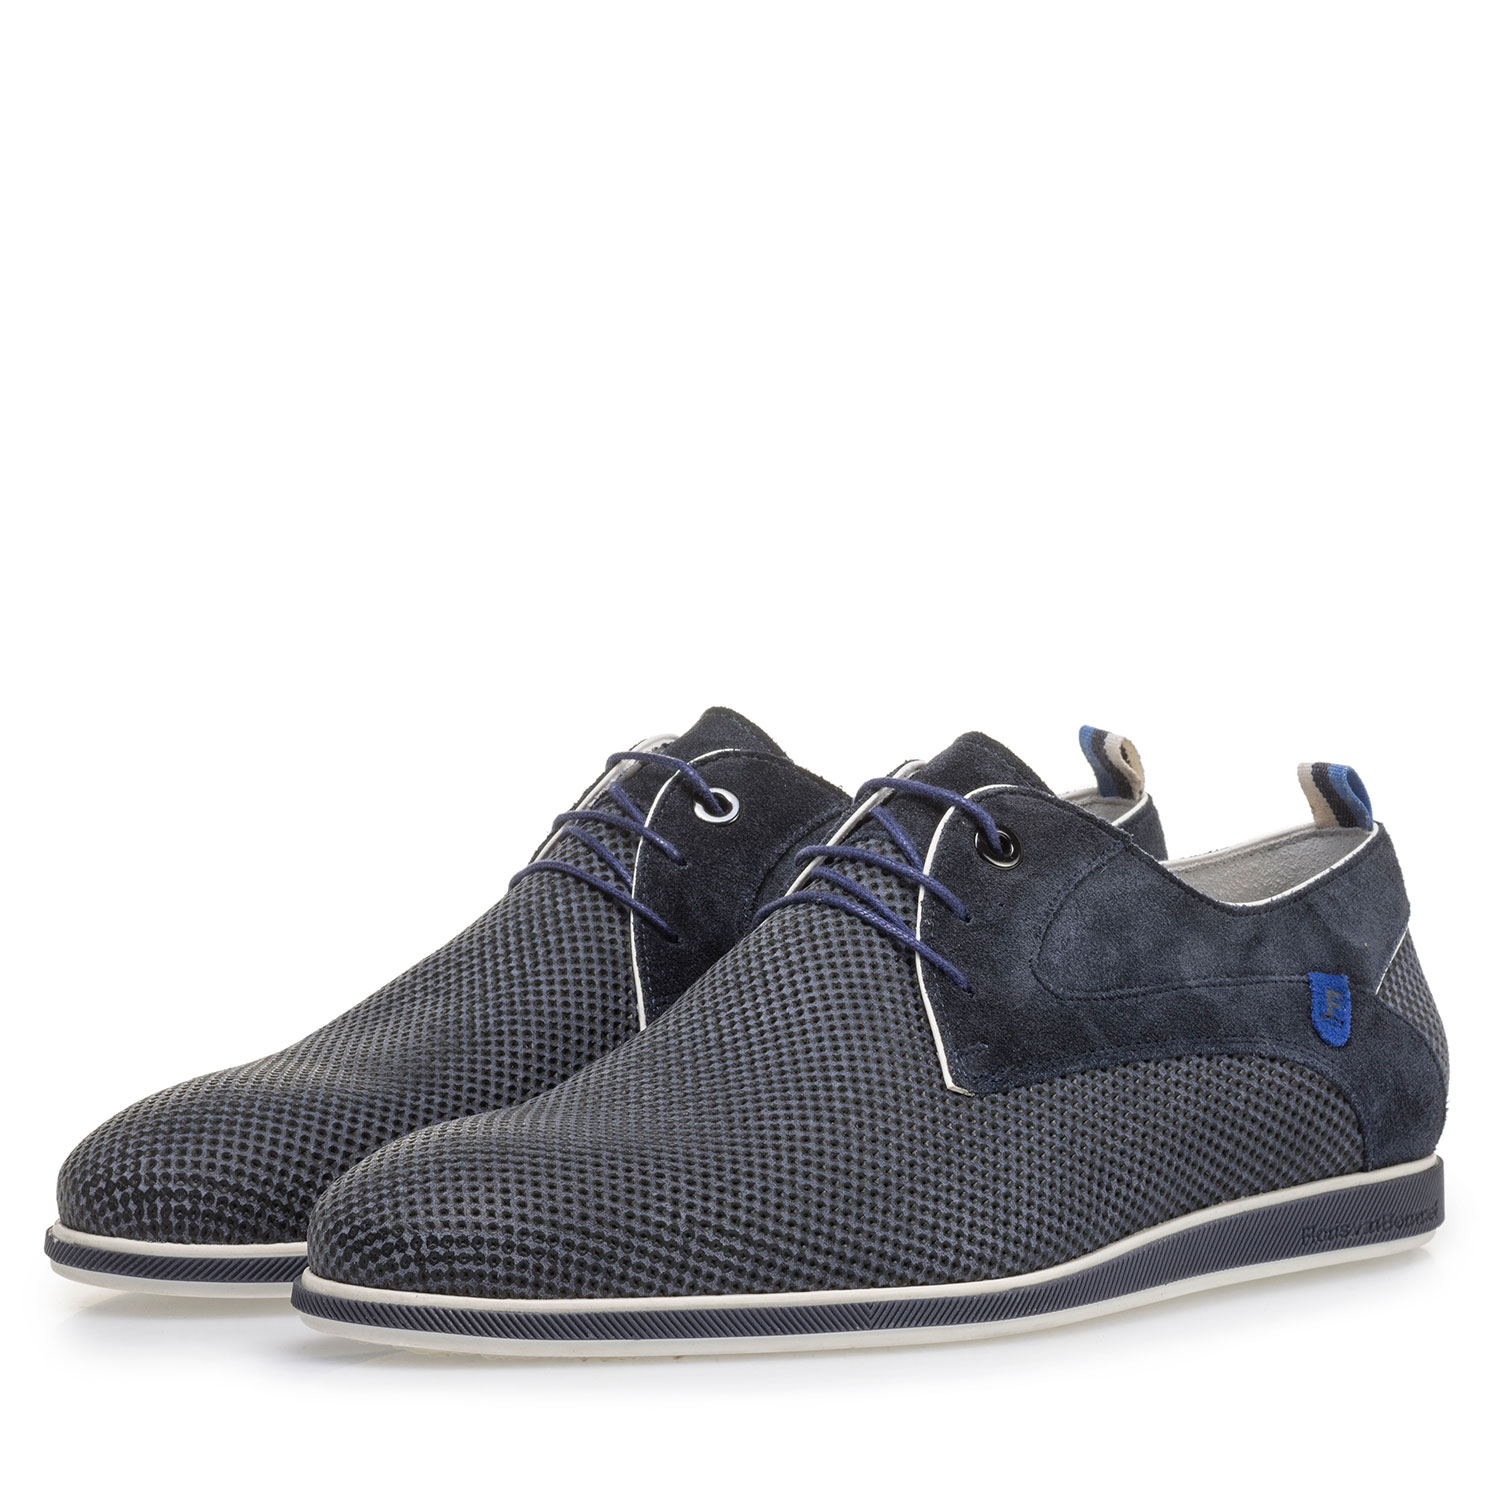 18201/13 - Blue suede leather lace shoe with print